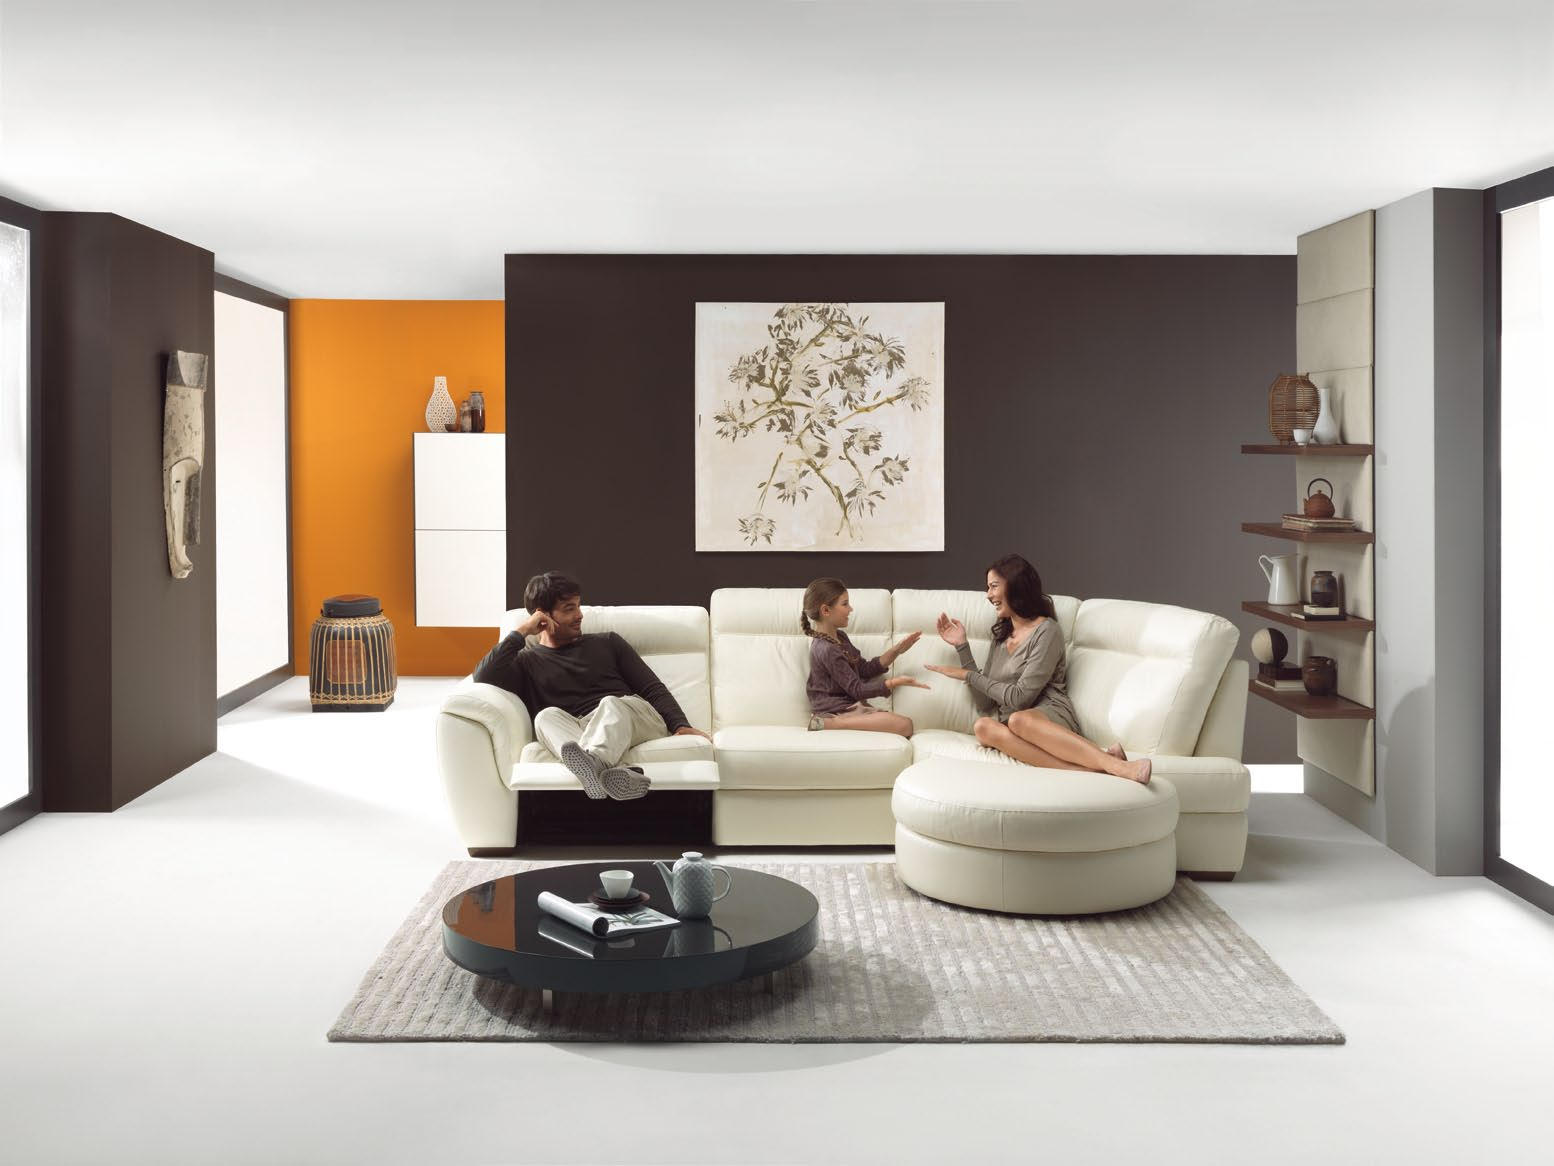 compact furniture for small spaces. Interior Exterior Plan Mix And Match Living Area Compact Furniture For Small Spaces